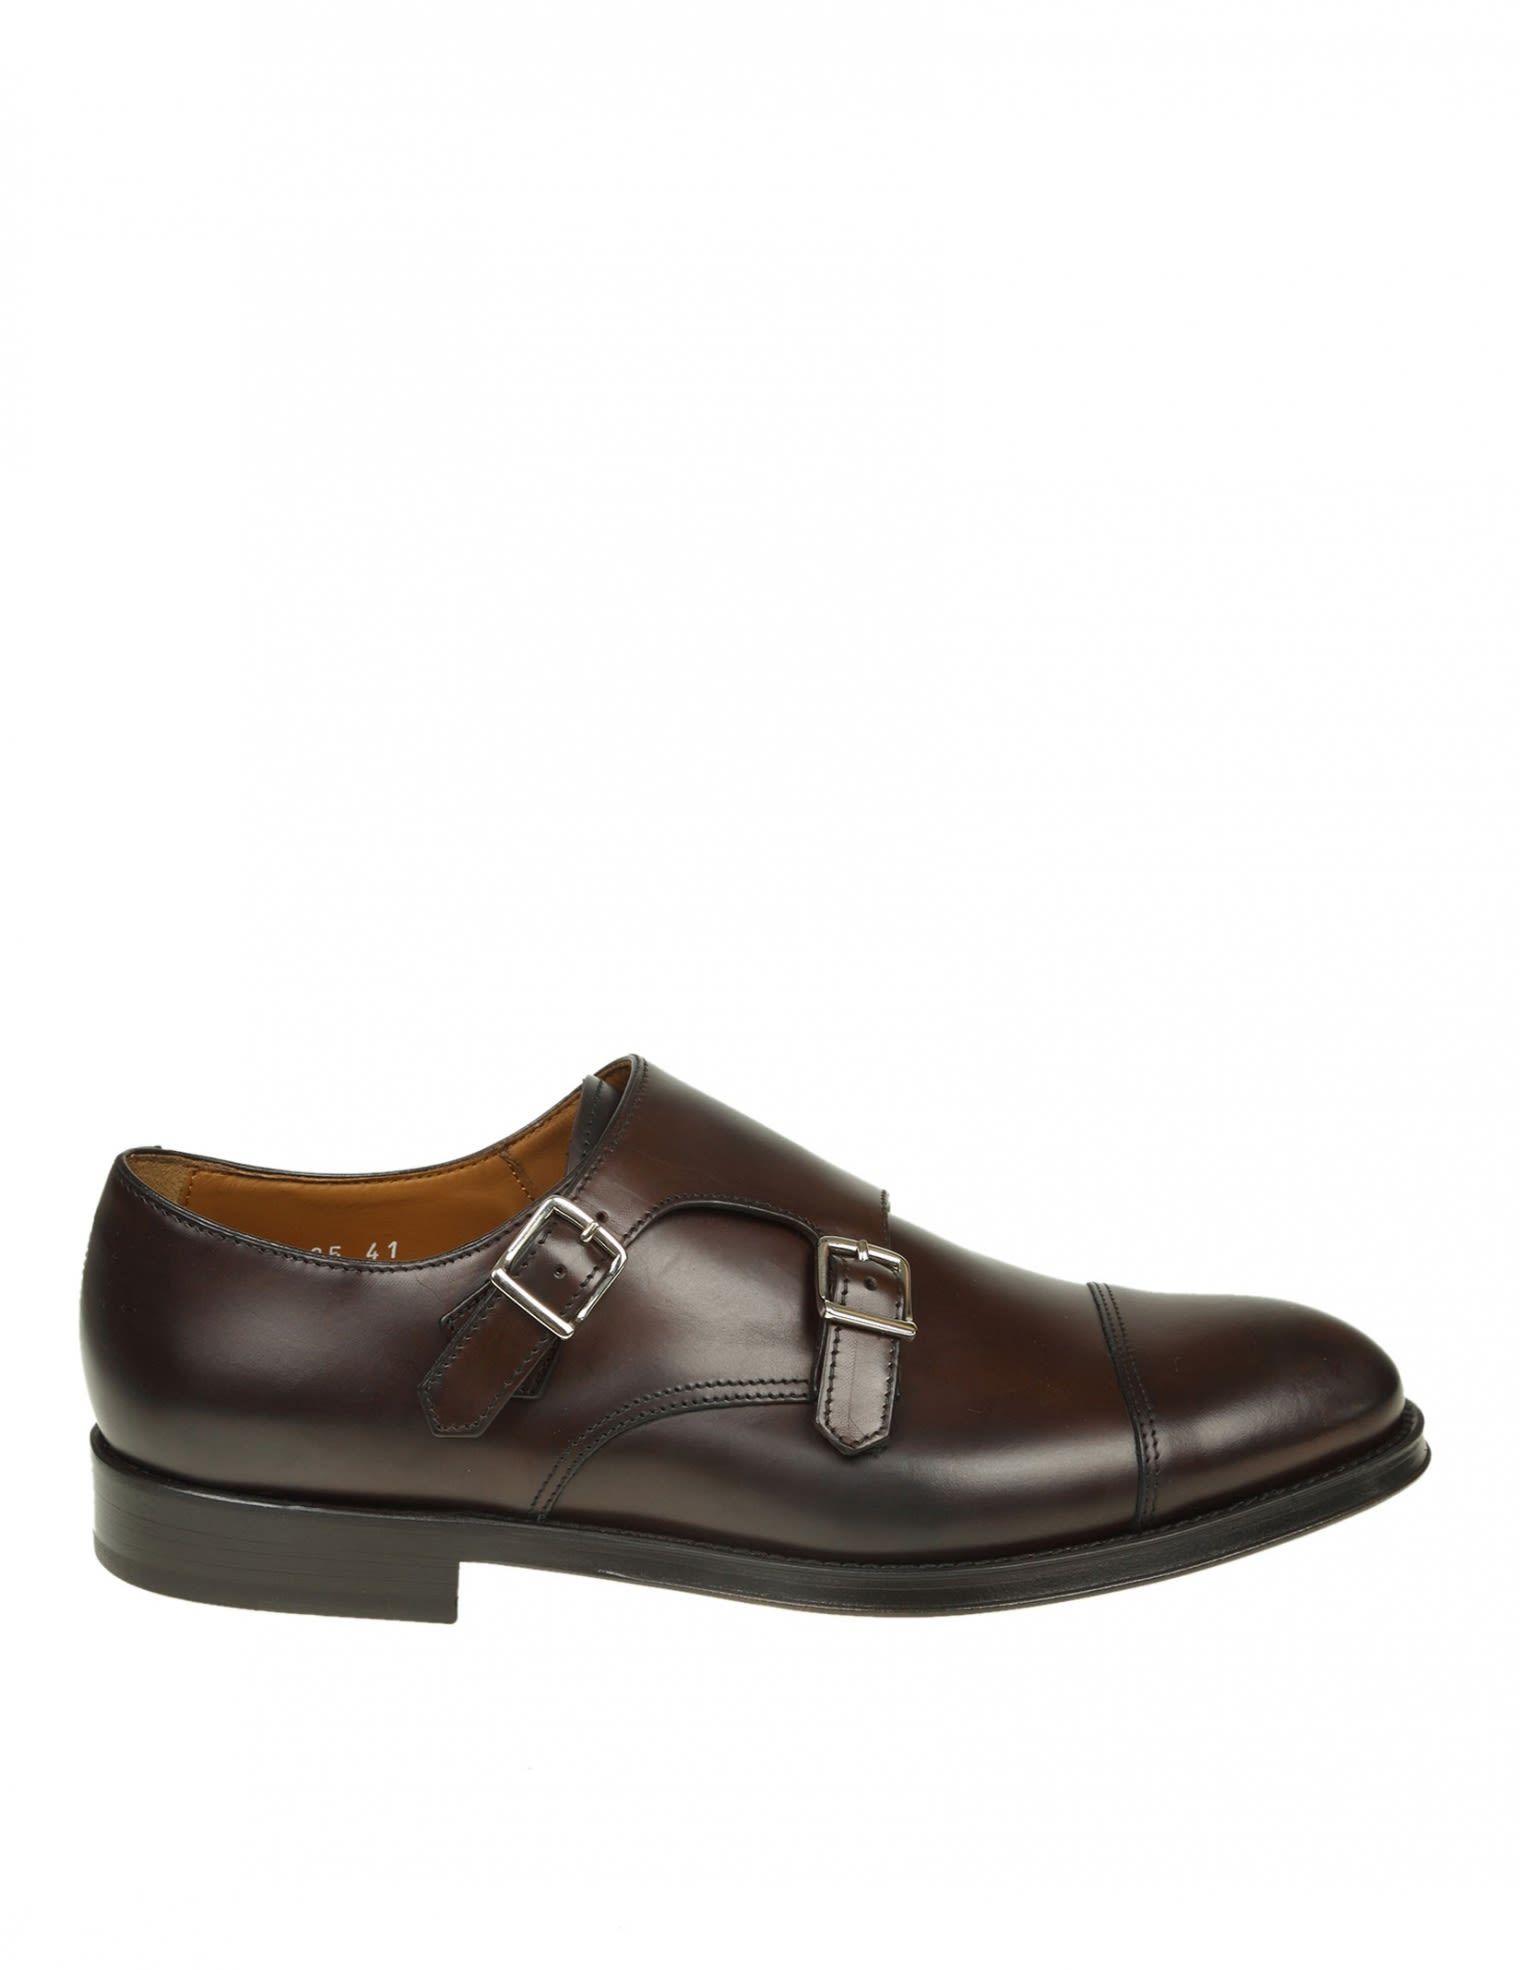 DOUCALS SHOE WITH DOUBLE BUCKLE IN LEATHER COLOR OF DARK BROWN